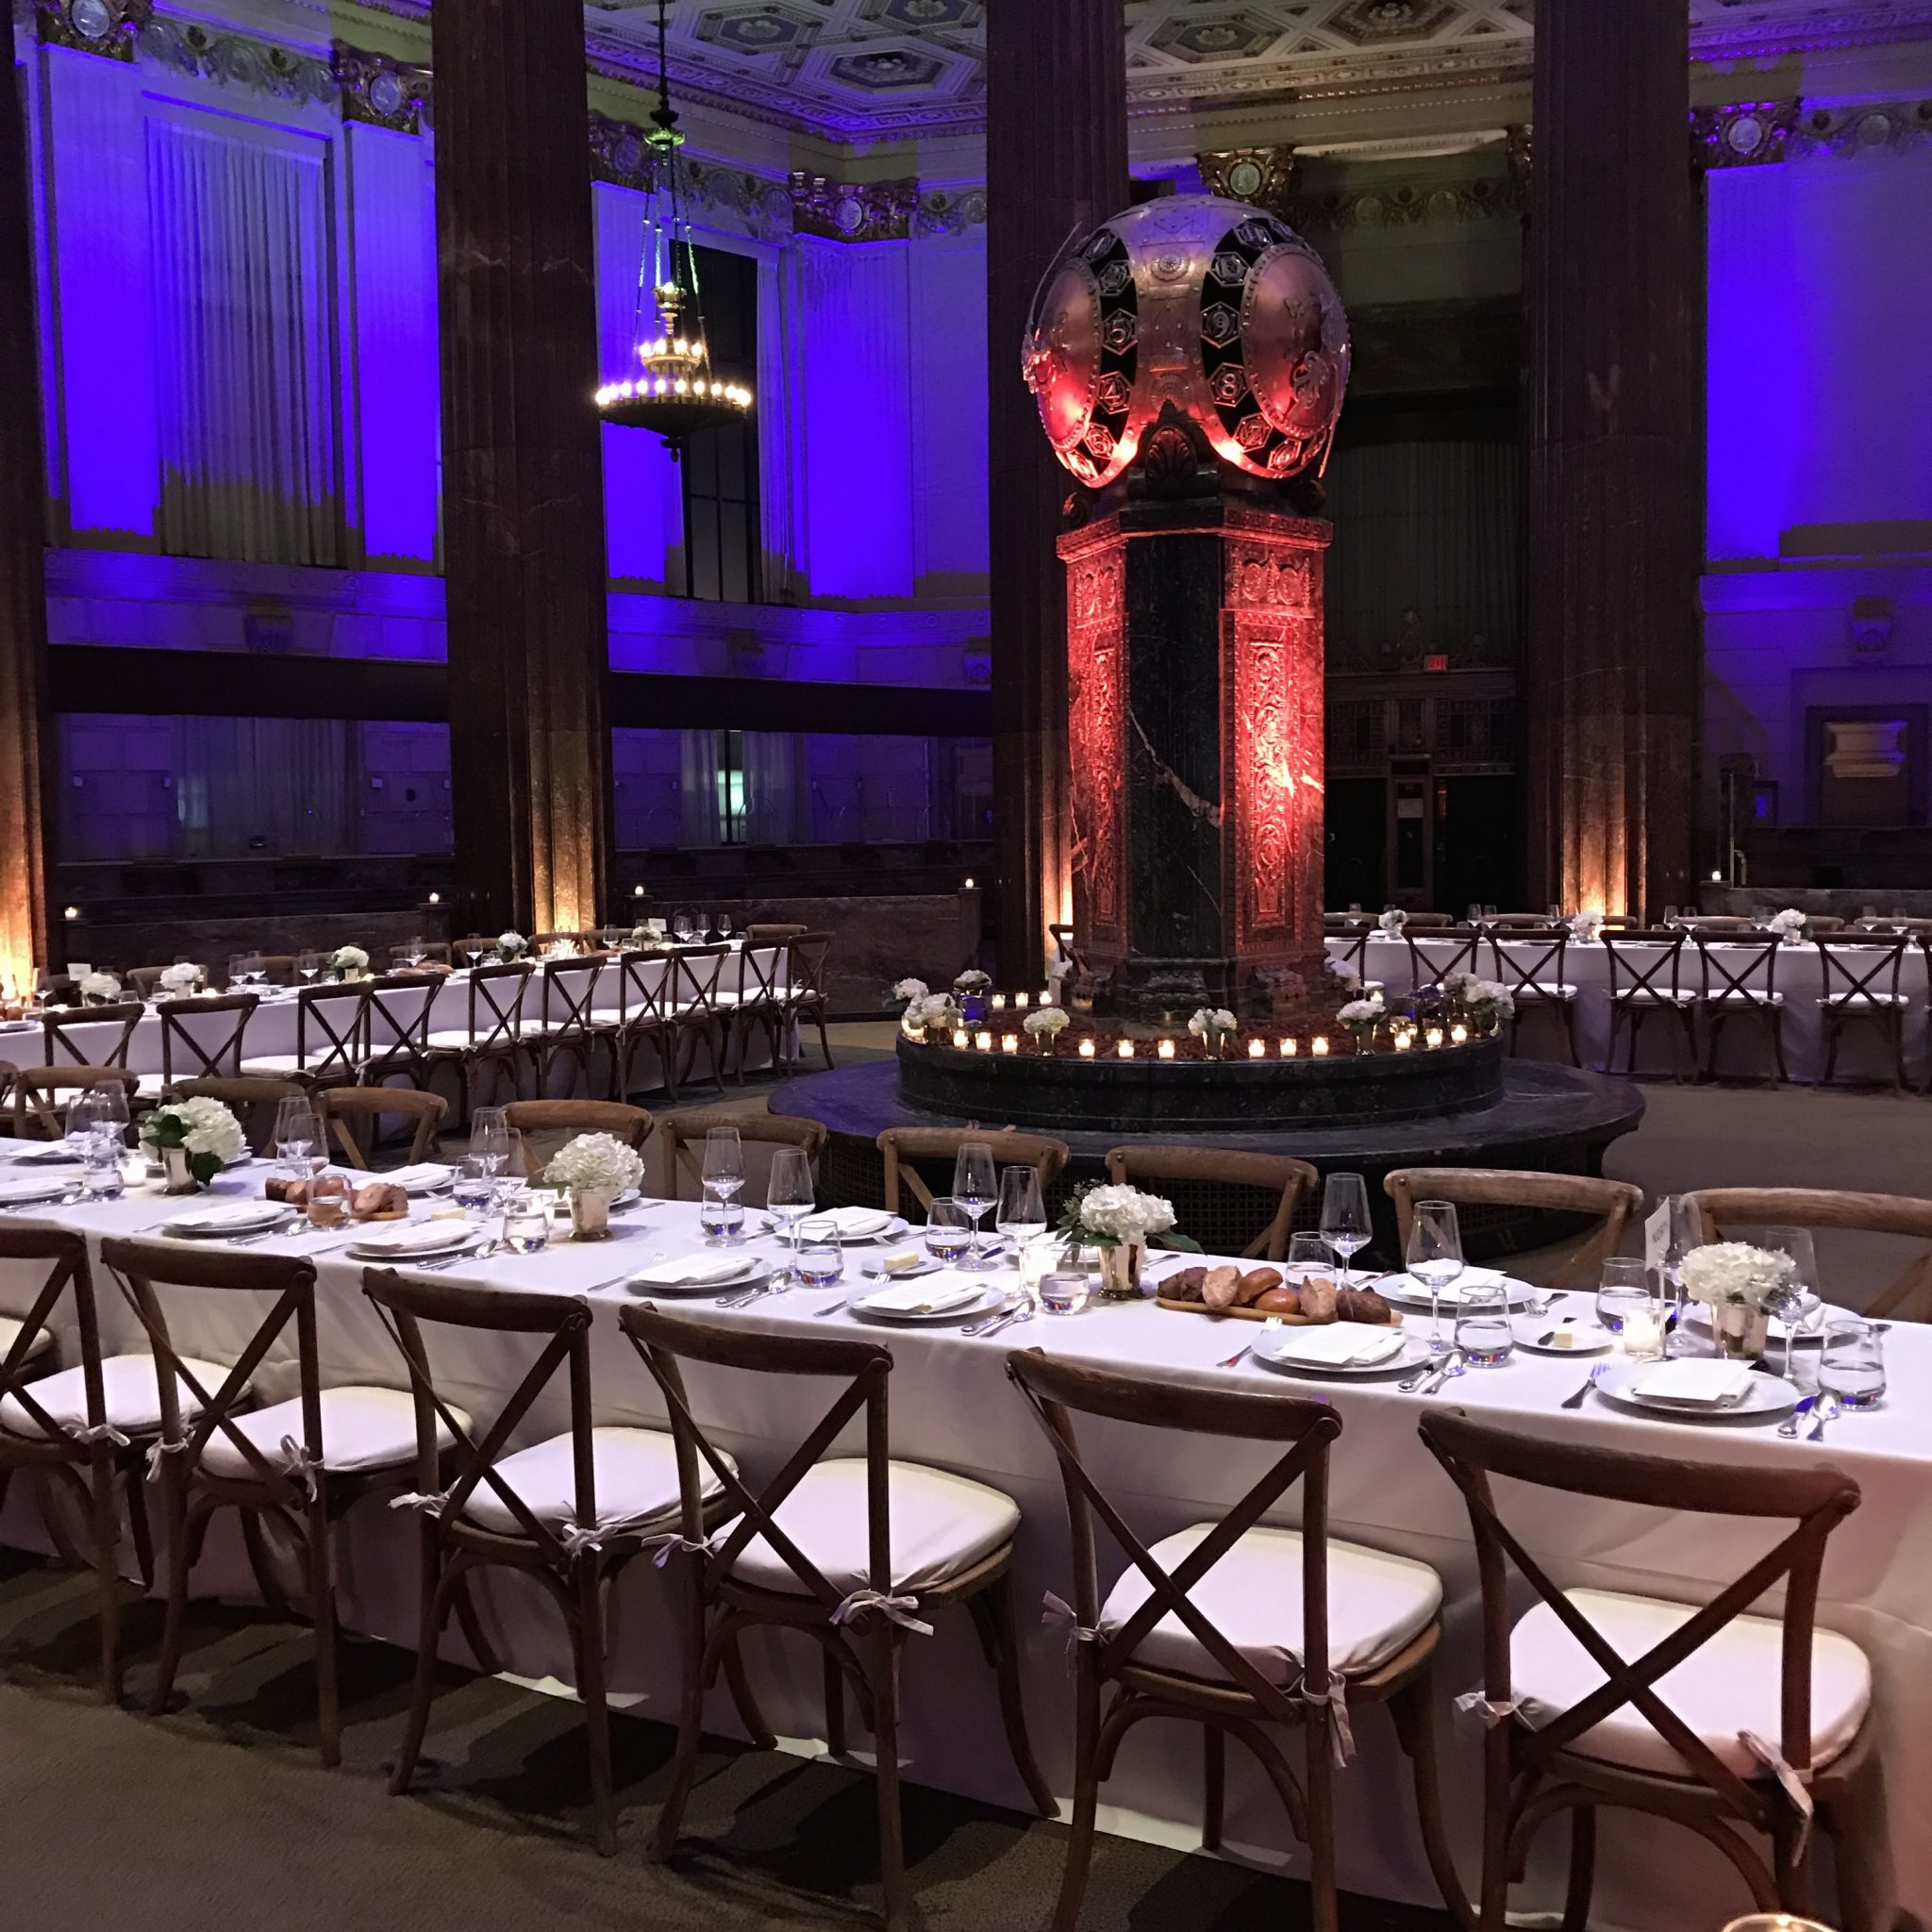 9 Dekalb ave Panerai's guests dined at tables arranged under the former DIme Savings Bank's dome.